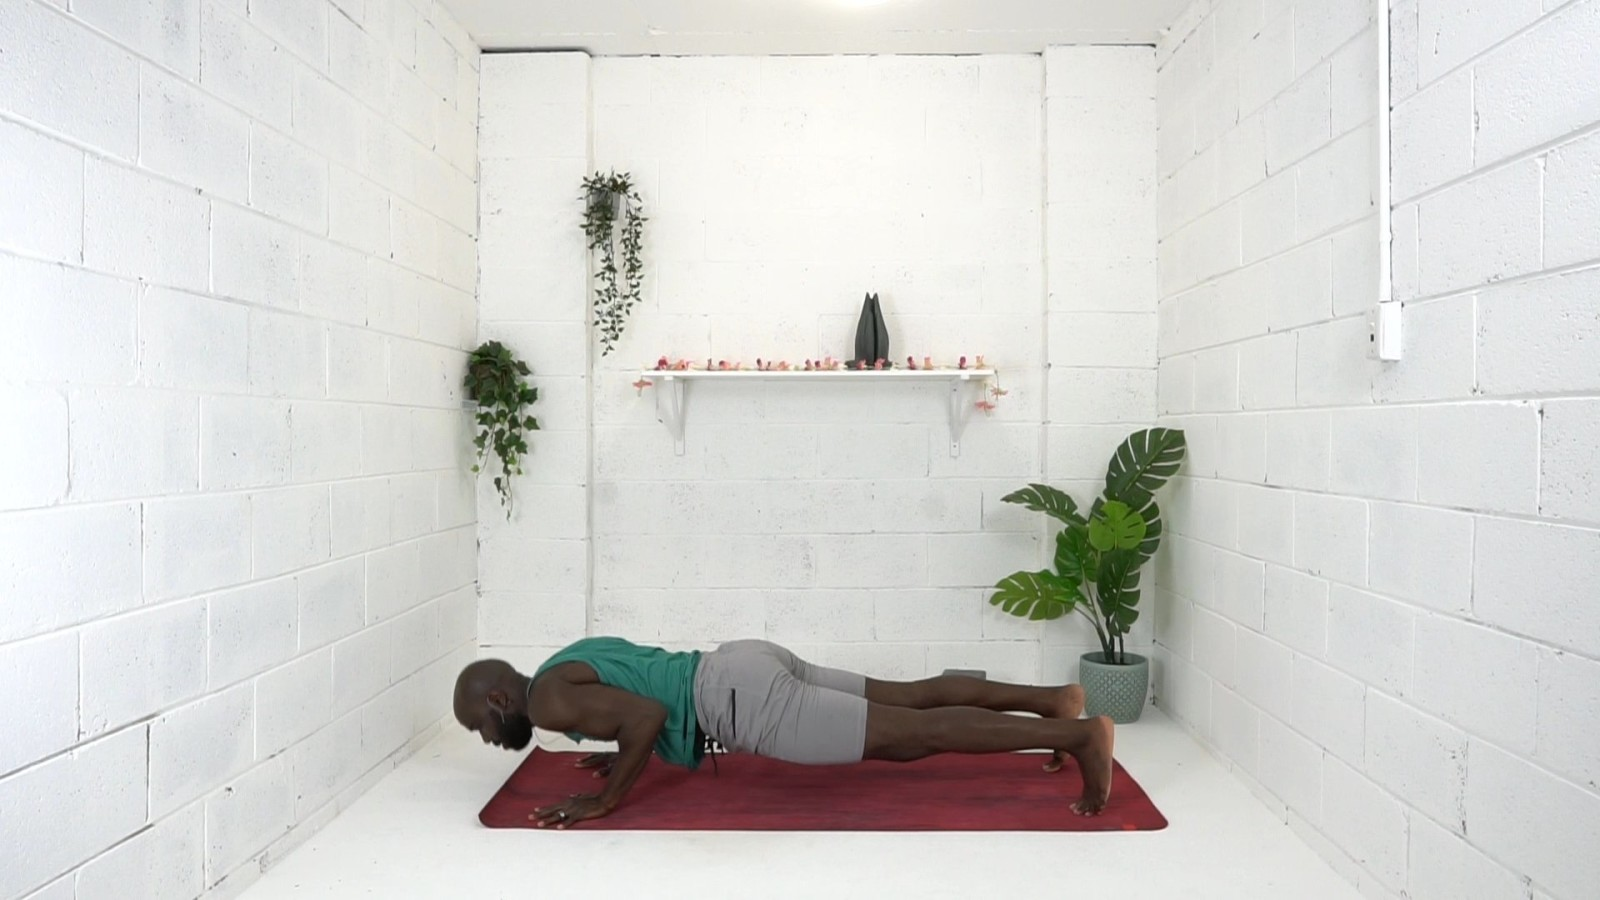 Plank to Pleasure with David Coulibaly